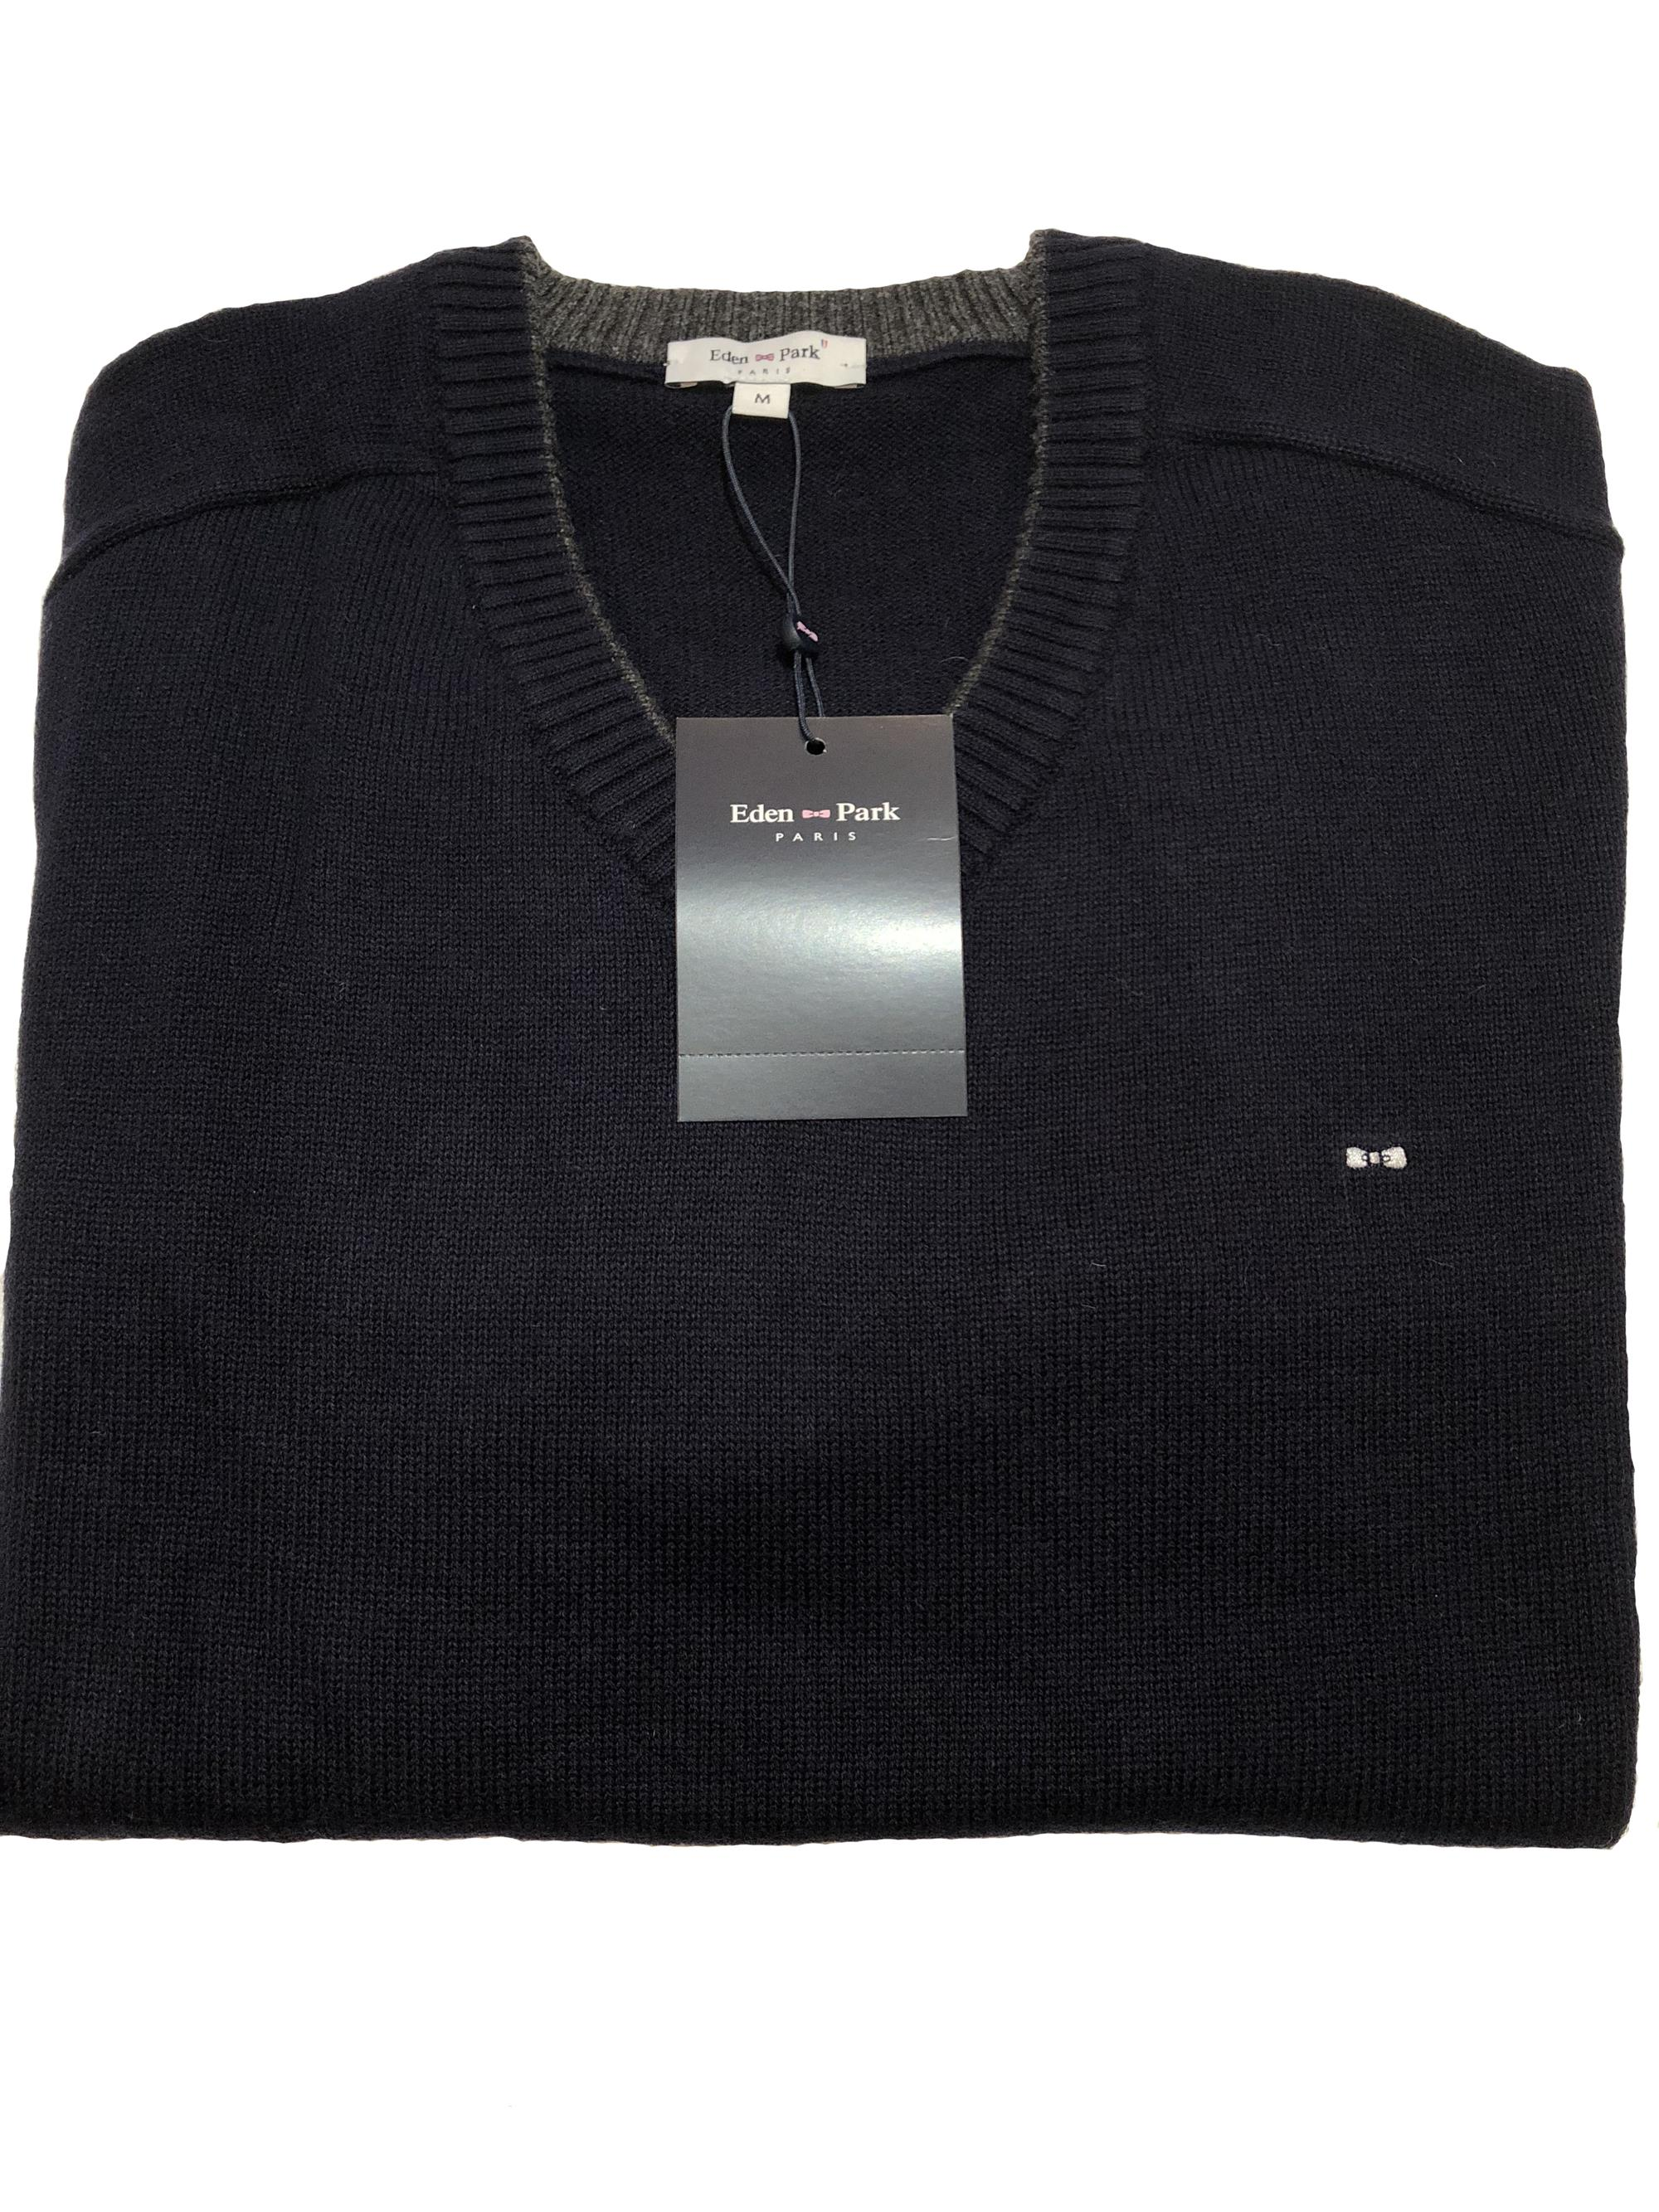 eden park trimmed v-neck sweater (navy)